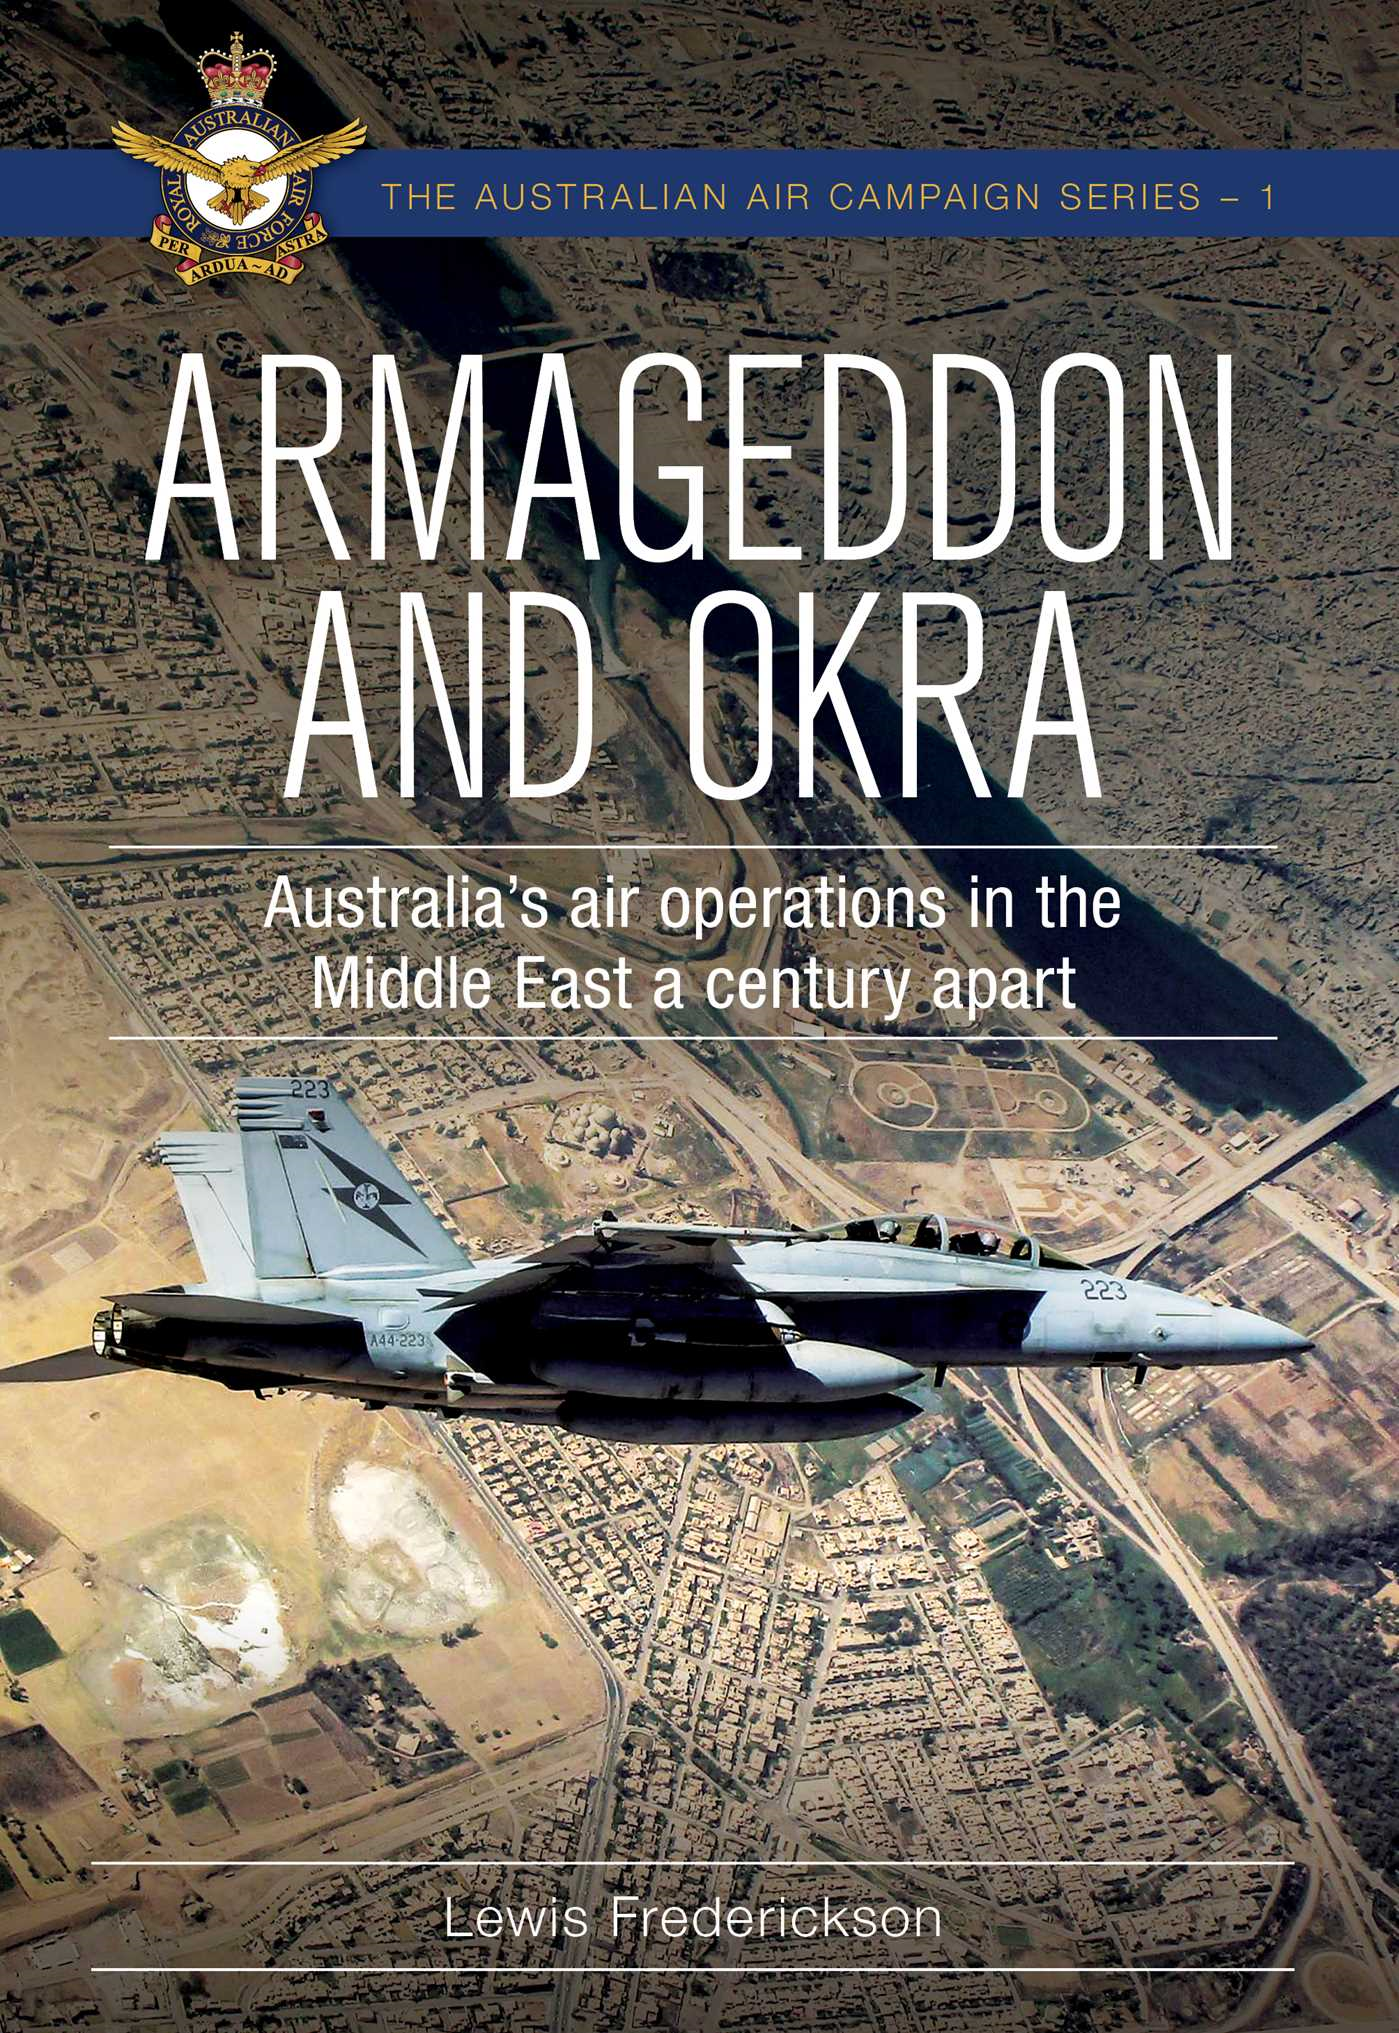 Armageddon and OKRA